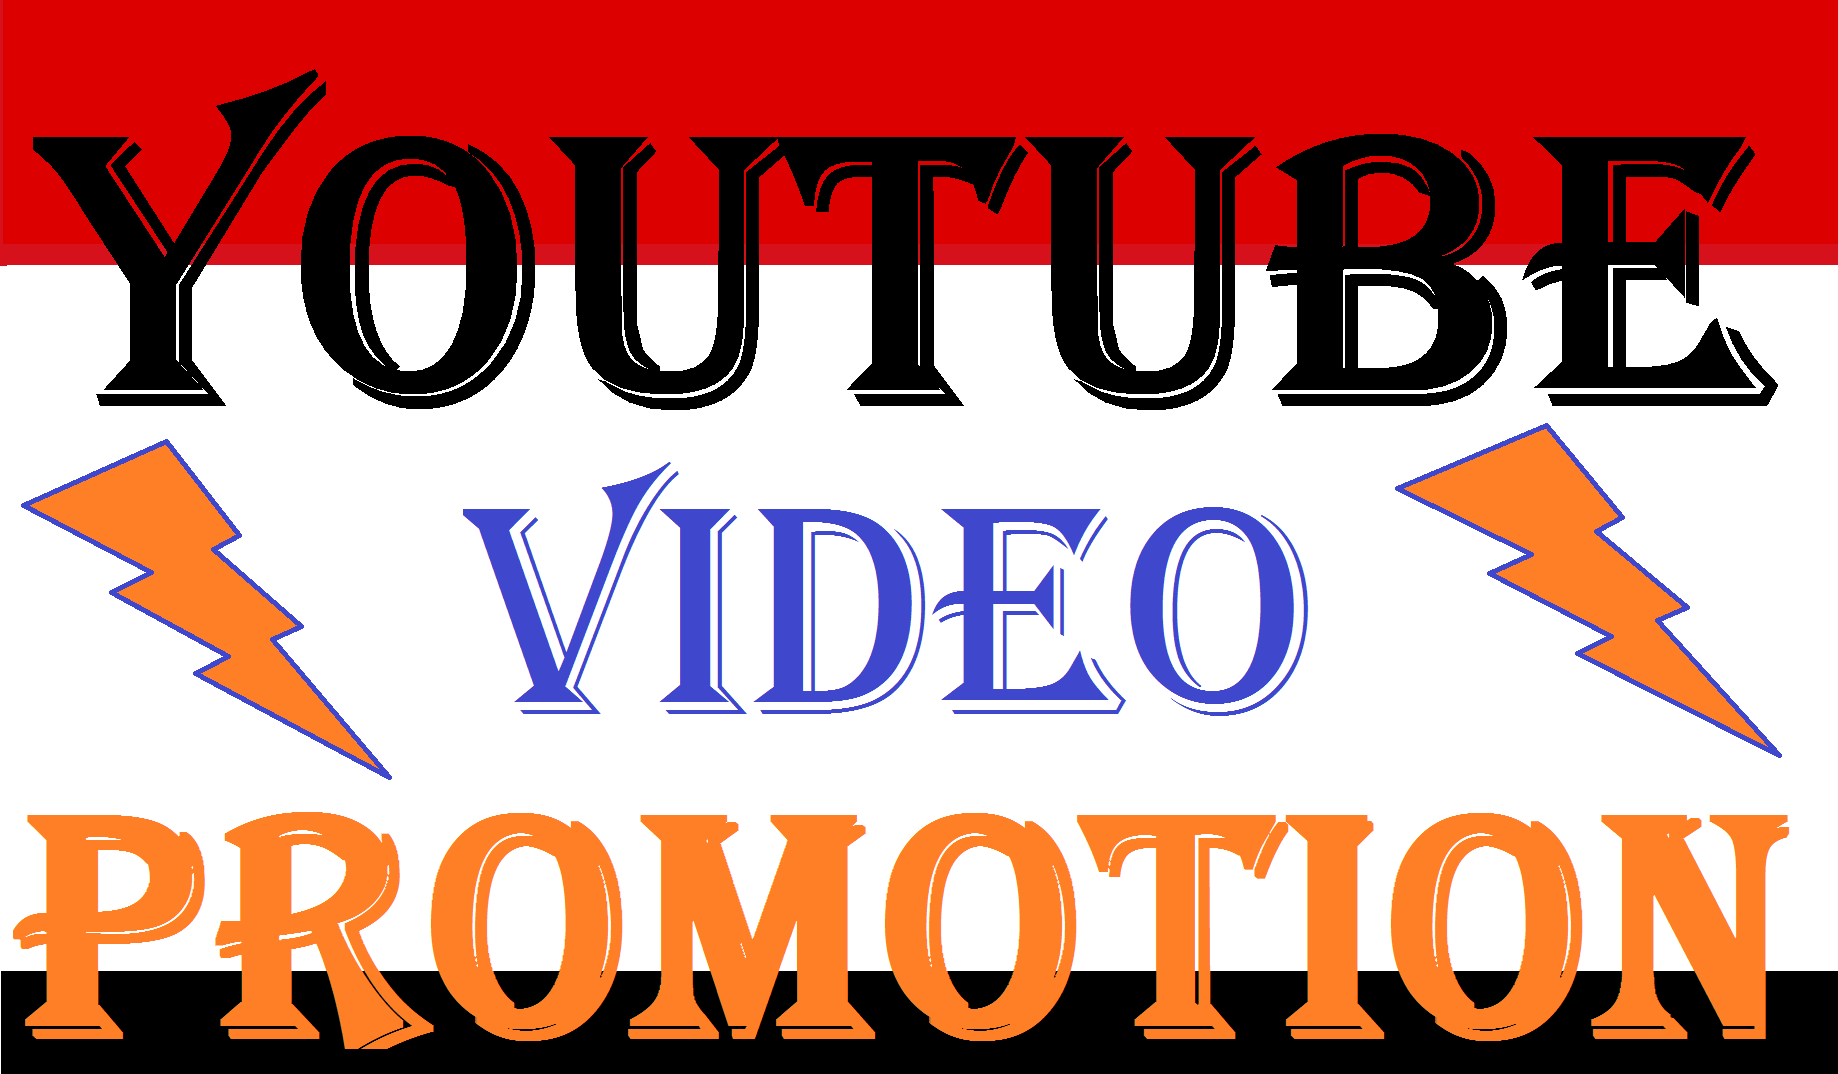 Promote your YouTube Video Today very cheep